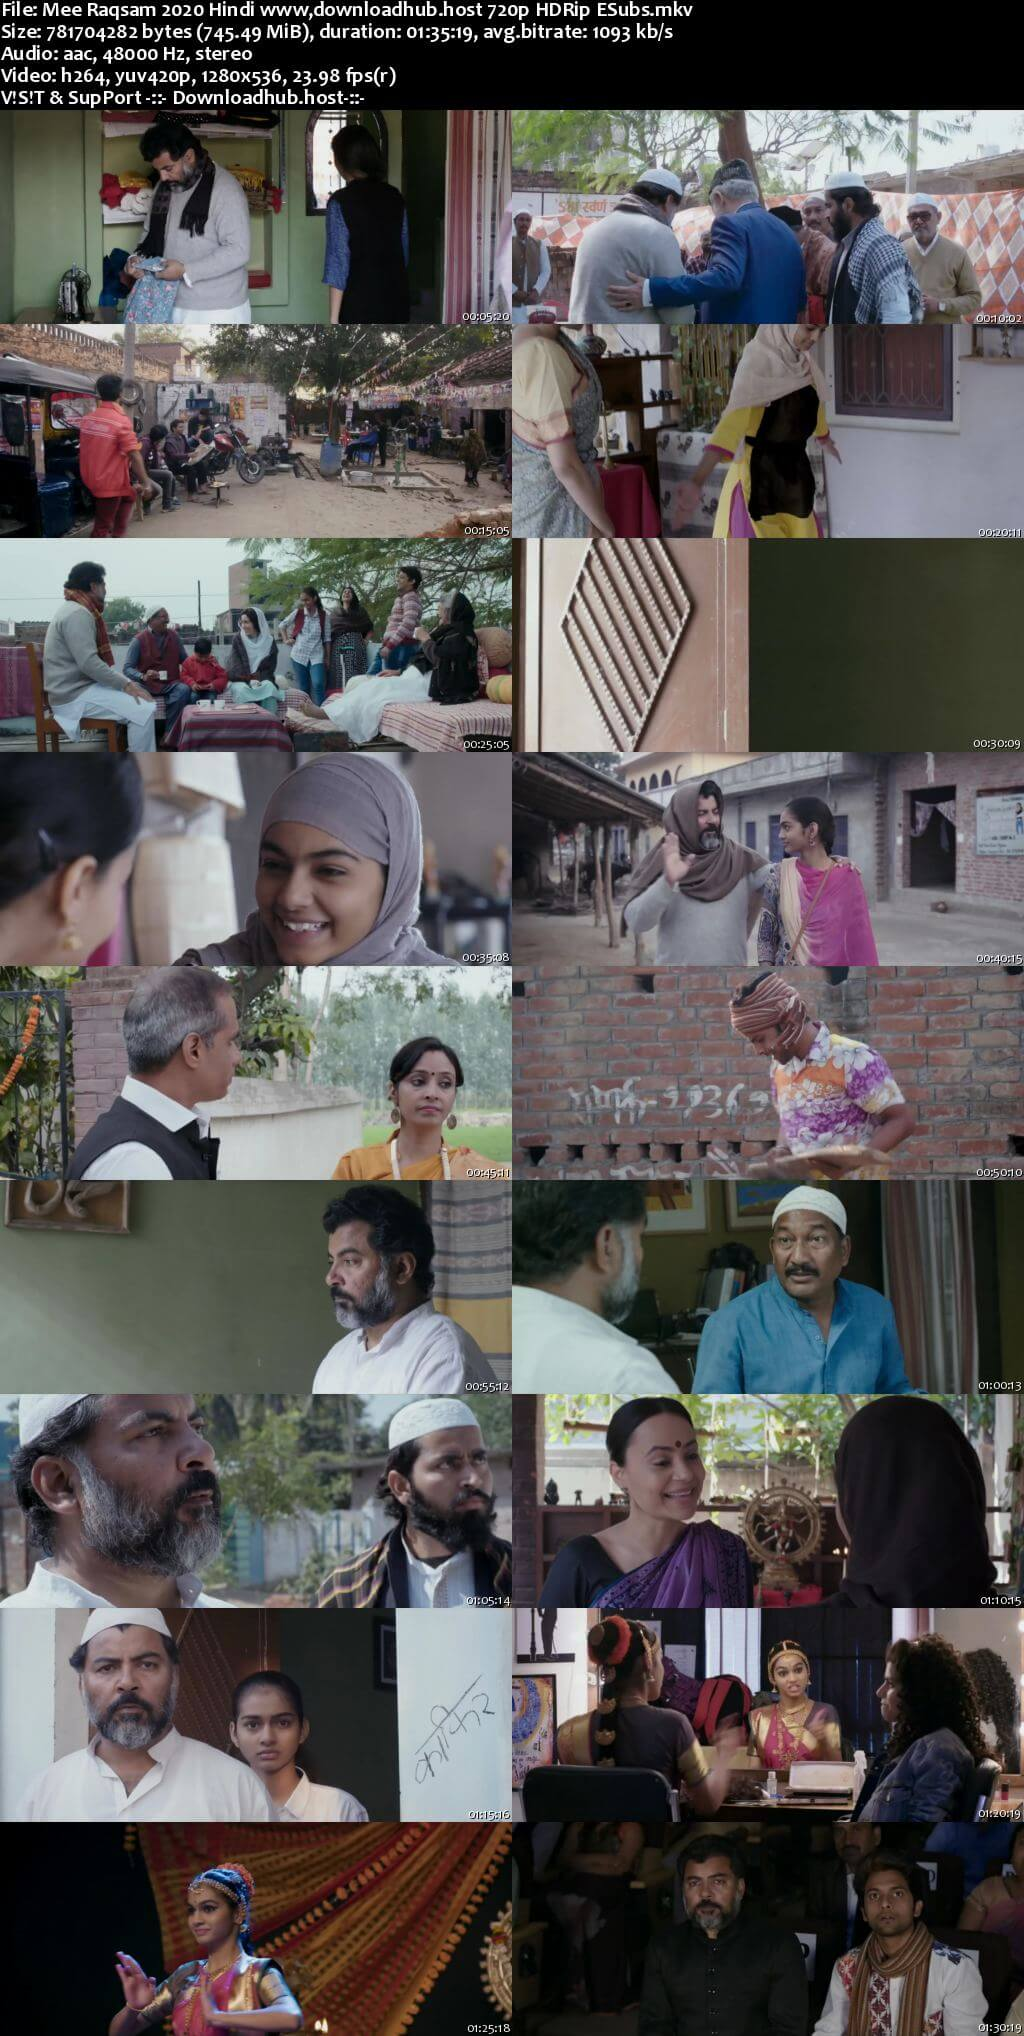 Mee Raqsam 2020 Hindi 720p HDRip ESubs